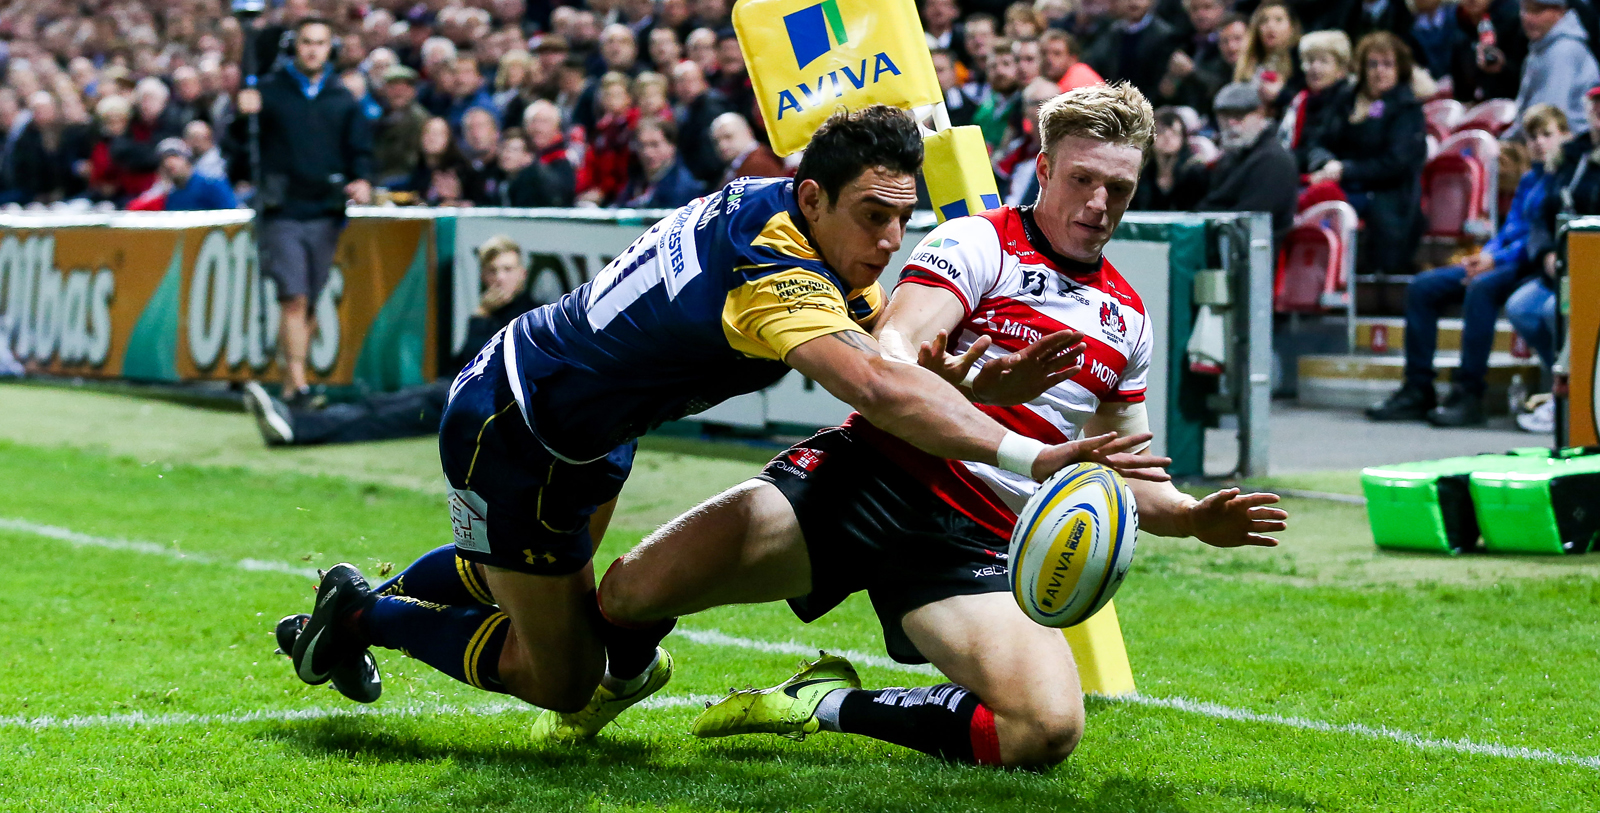 REPORT <span class='sep'>|</span> Gloucester Rugby 24-19 Warriors